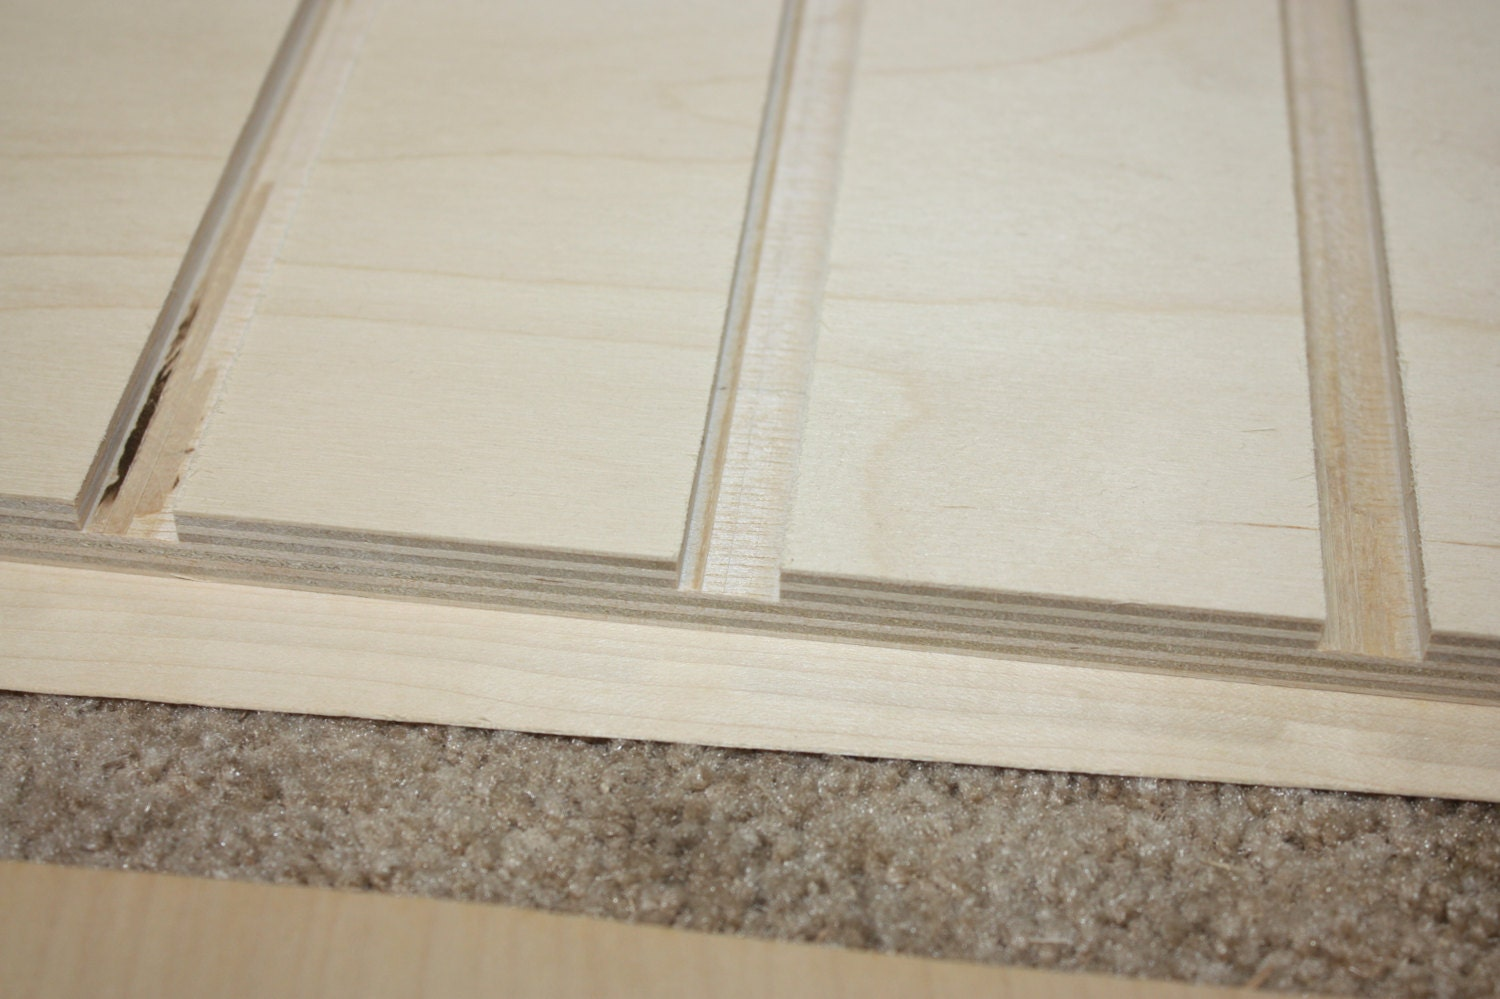 Dado in 9 ply Baltic Birch Plywood for Jewelry Box